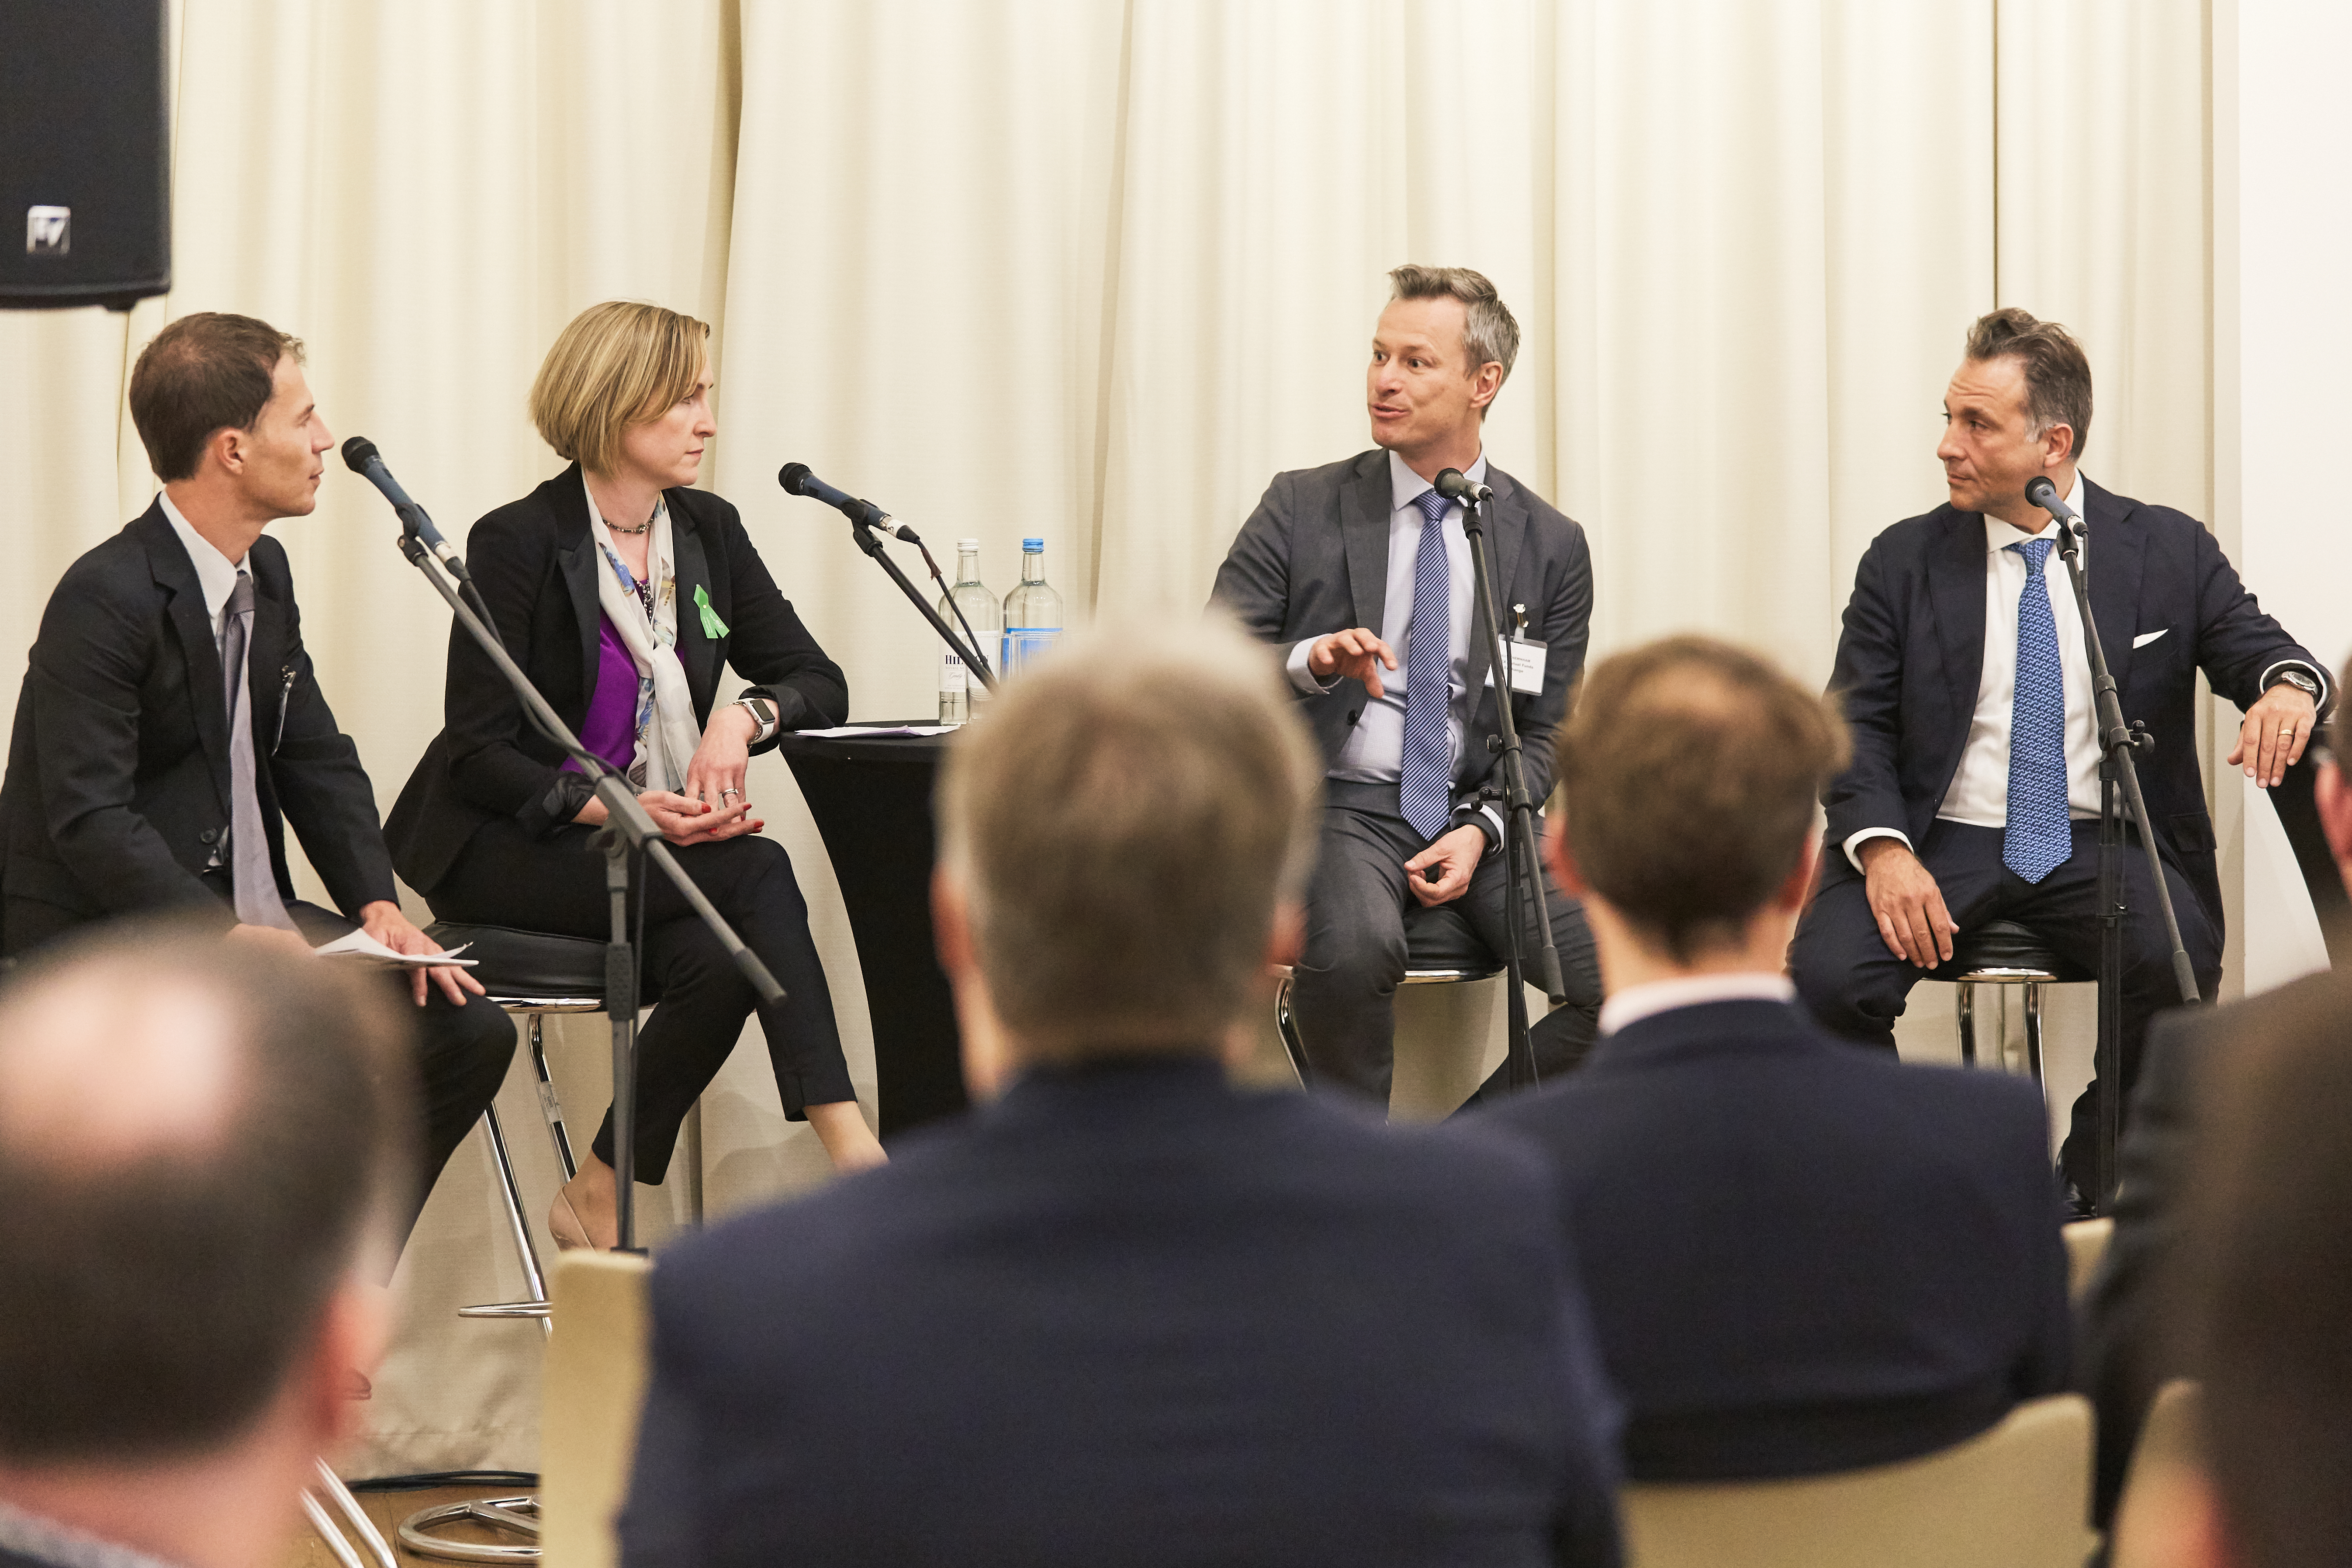 Fund Platforms Panel: Platforms 2.0 (Chaired by Nik Pratt, Technology & Operations Editor, Funds Europe, pictured far left)